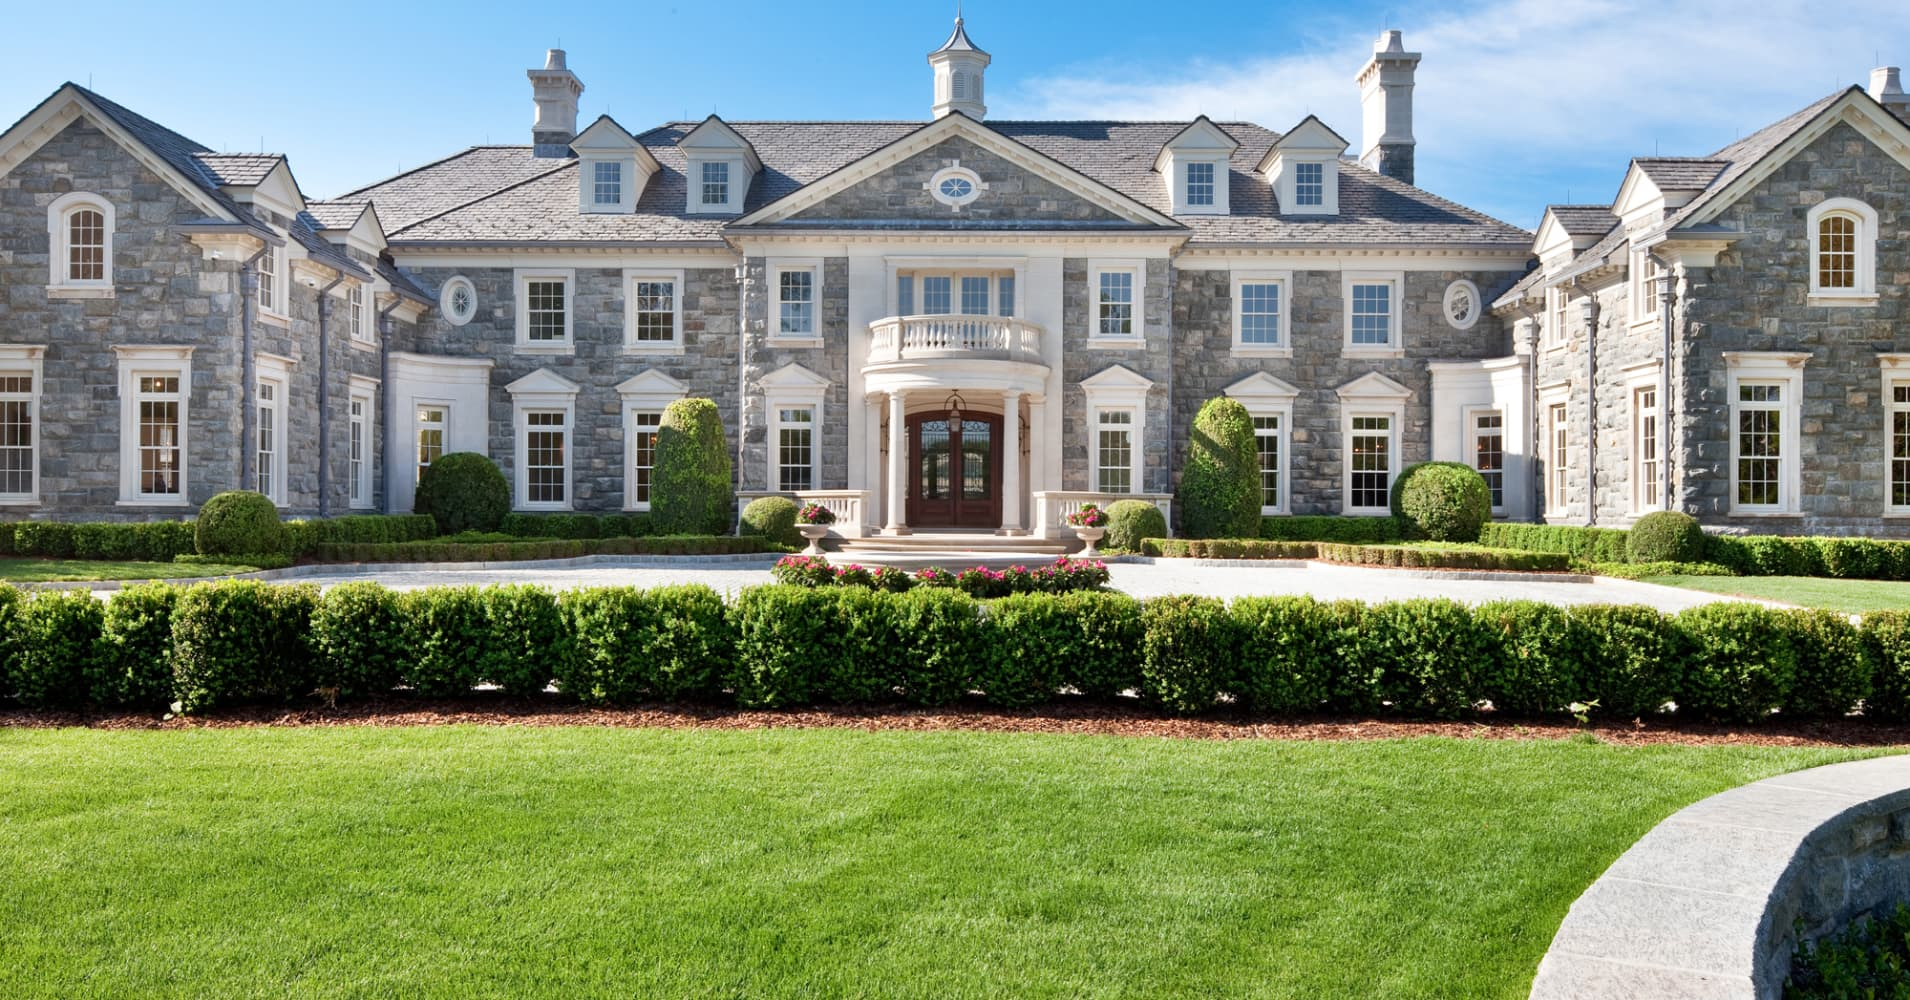 10 insane ways to pimp your megahome Nice houses in new jersey